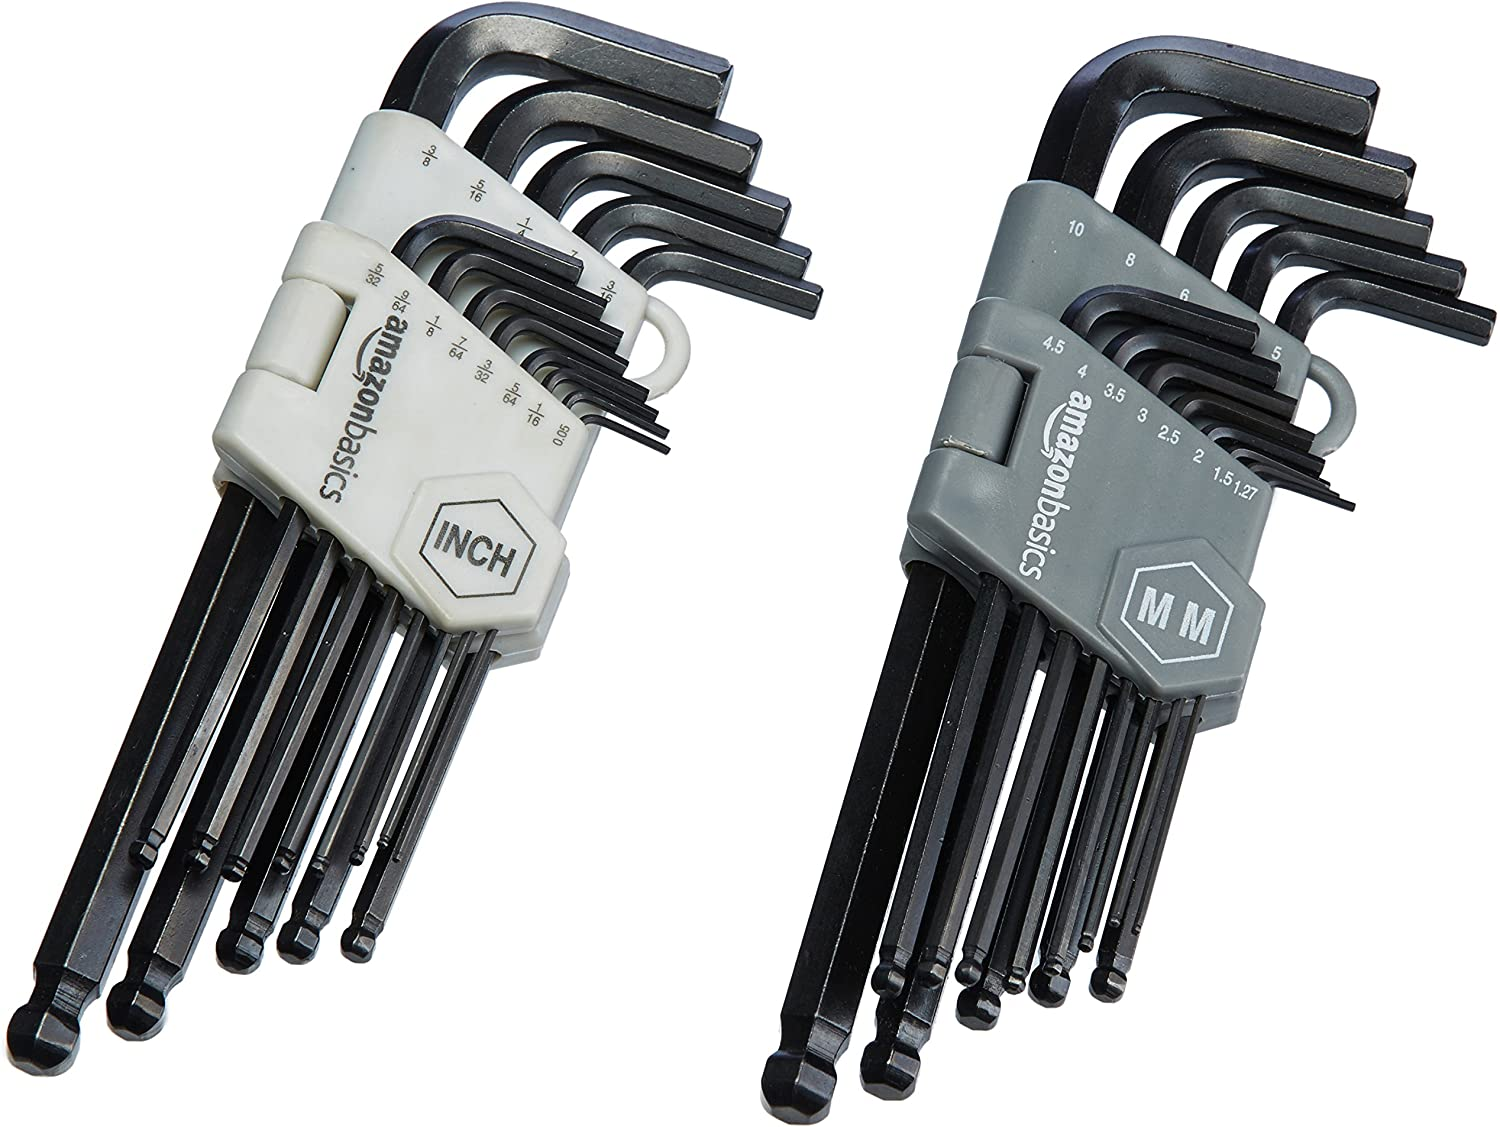 6 x T Handle Hex Key Wrench Set Allen Alan Double Ended Metric 2 2.5 3 4 5 6mm